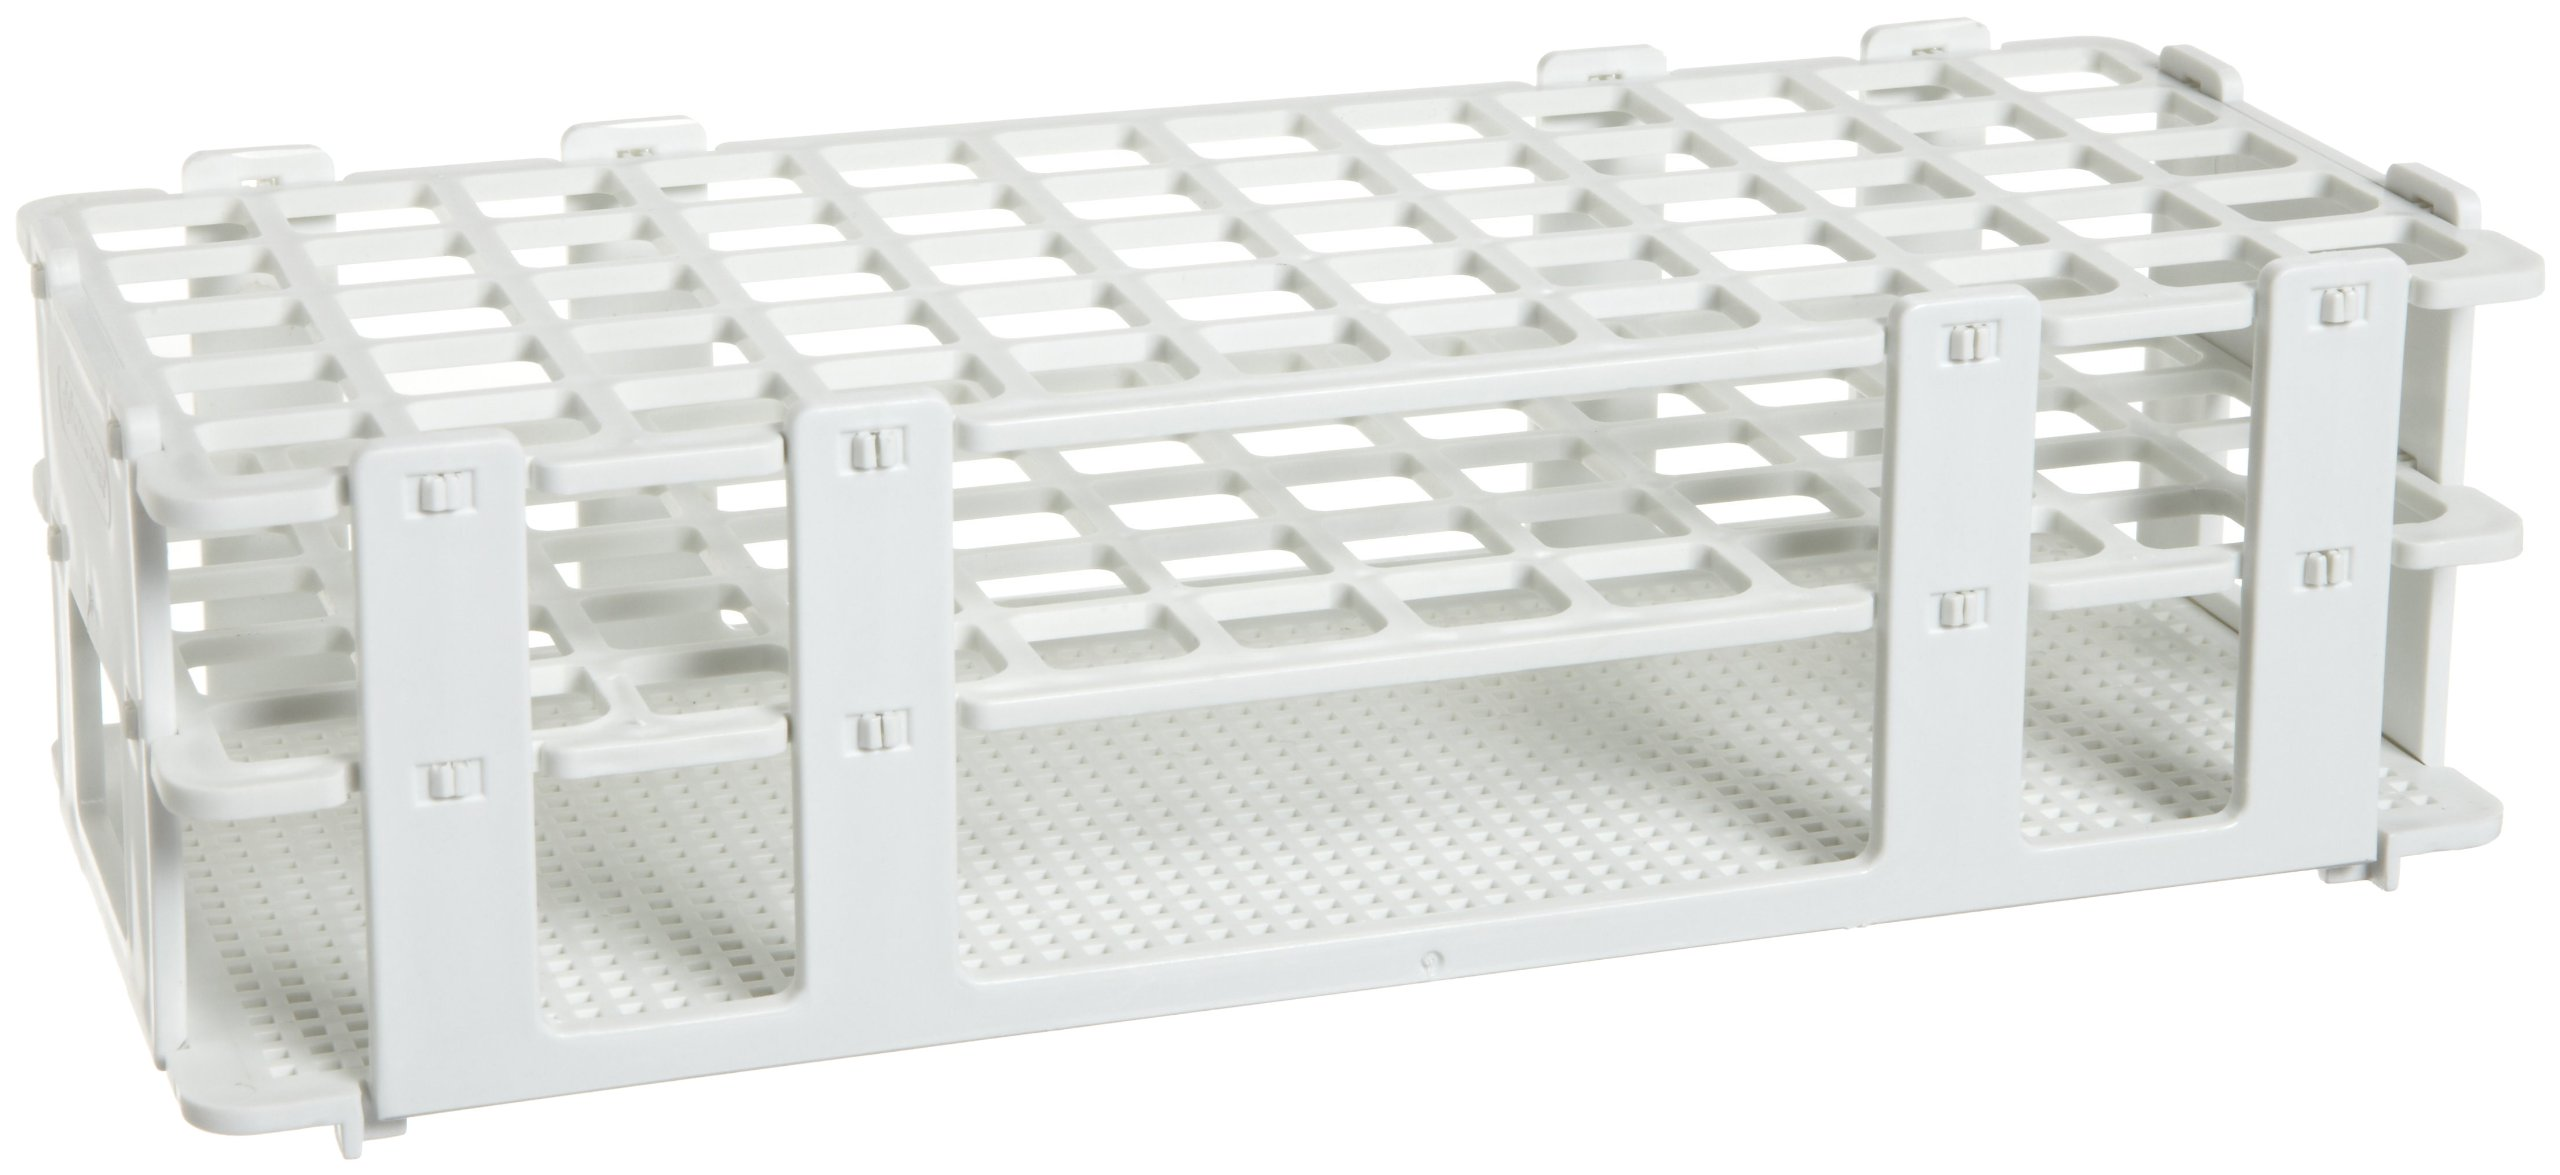 Bel-Art F18745-0001 No-Wire Test Tube Rack; 13-16mm, 60 Places, 9.7 x 4.1 x 2.5 in., Polypropylene, White